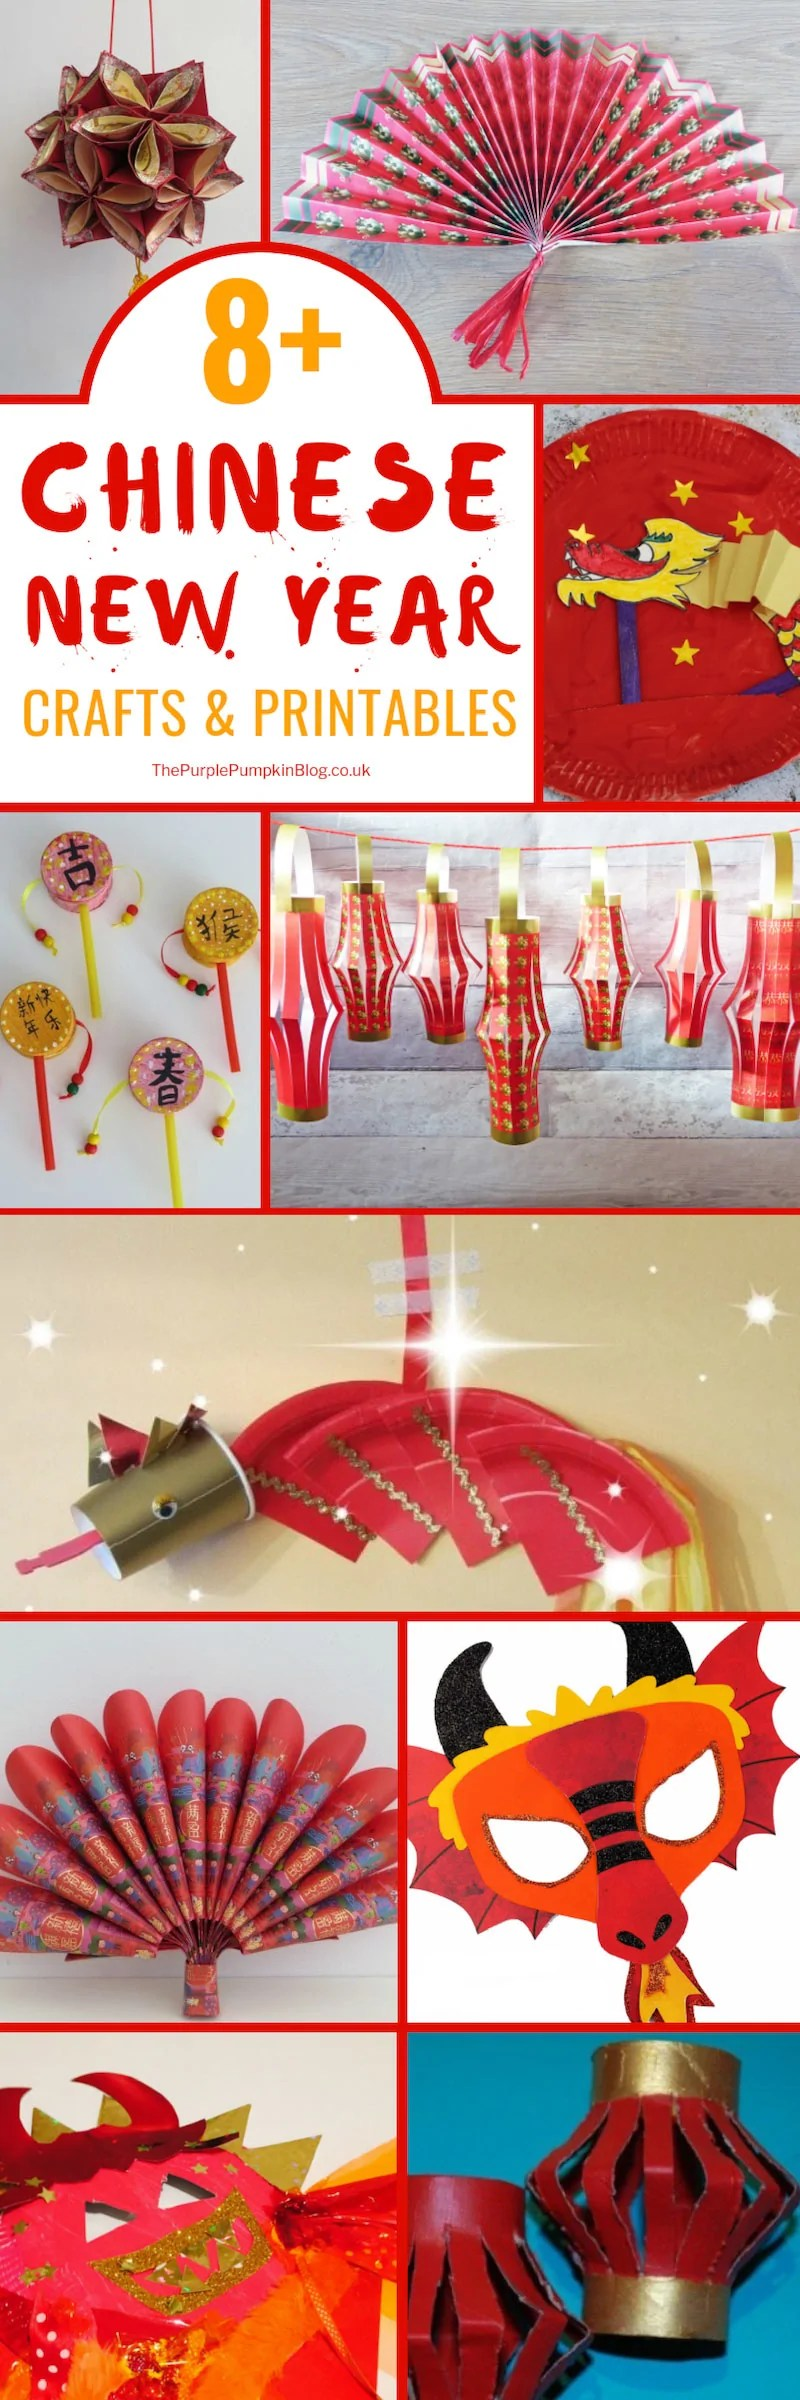 An awesome selection of Chinese New Year Crafts & Printables for kids and adults.